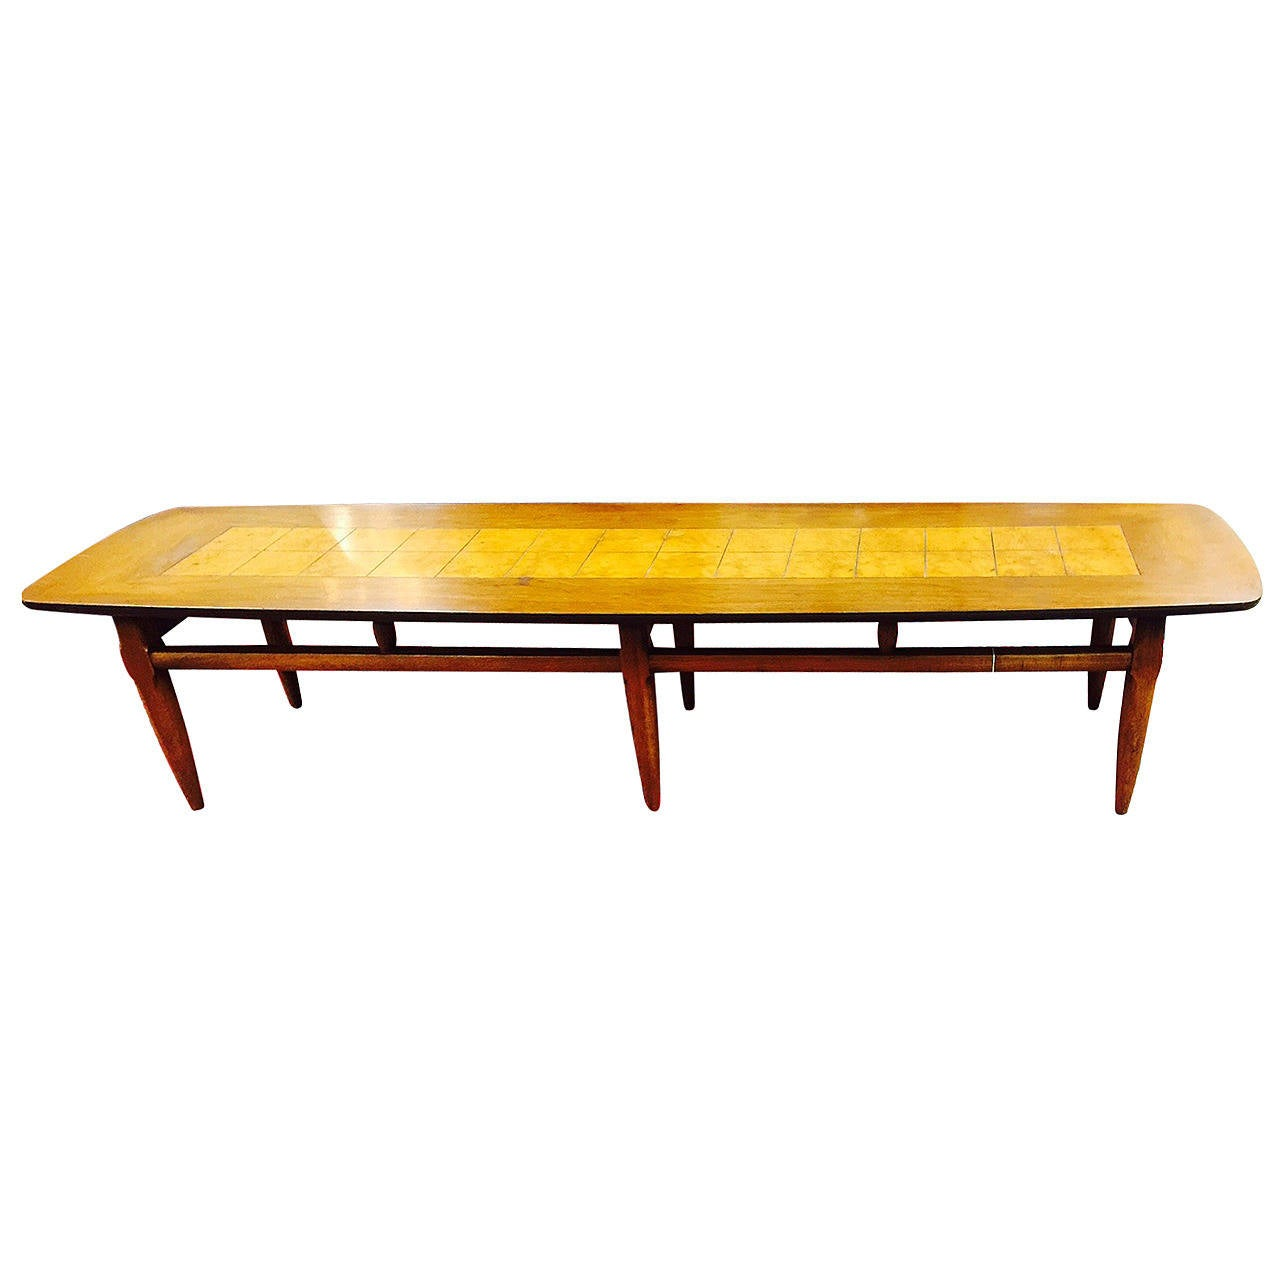 Mid century modern lane surfboard coffee table at 1stdibs Mid century coffee tables